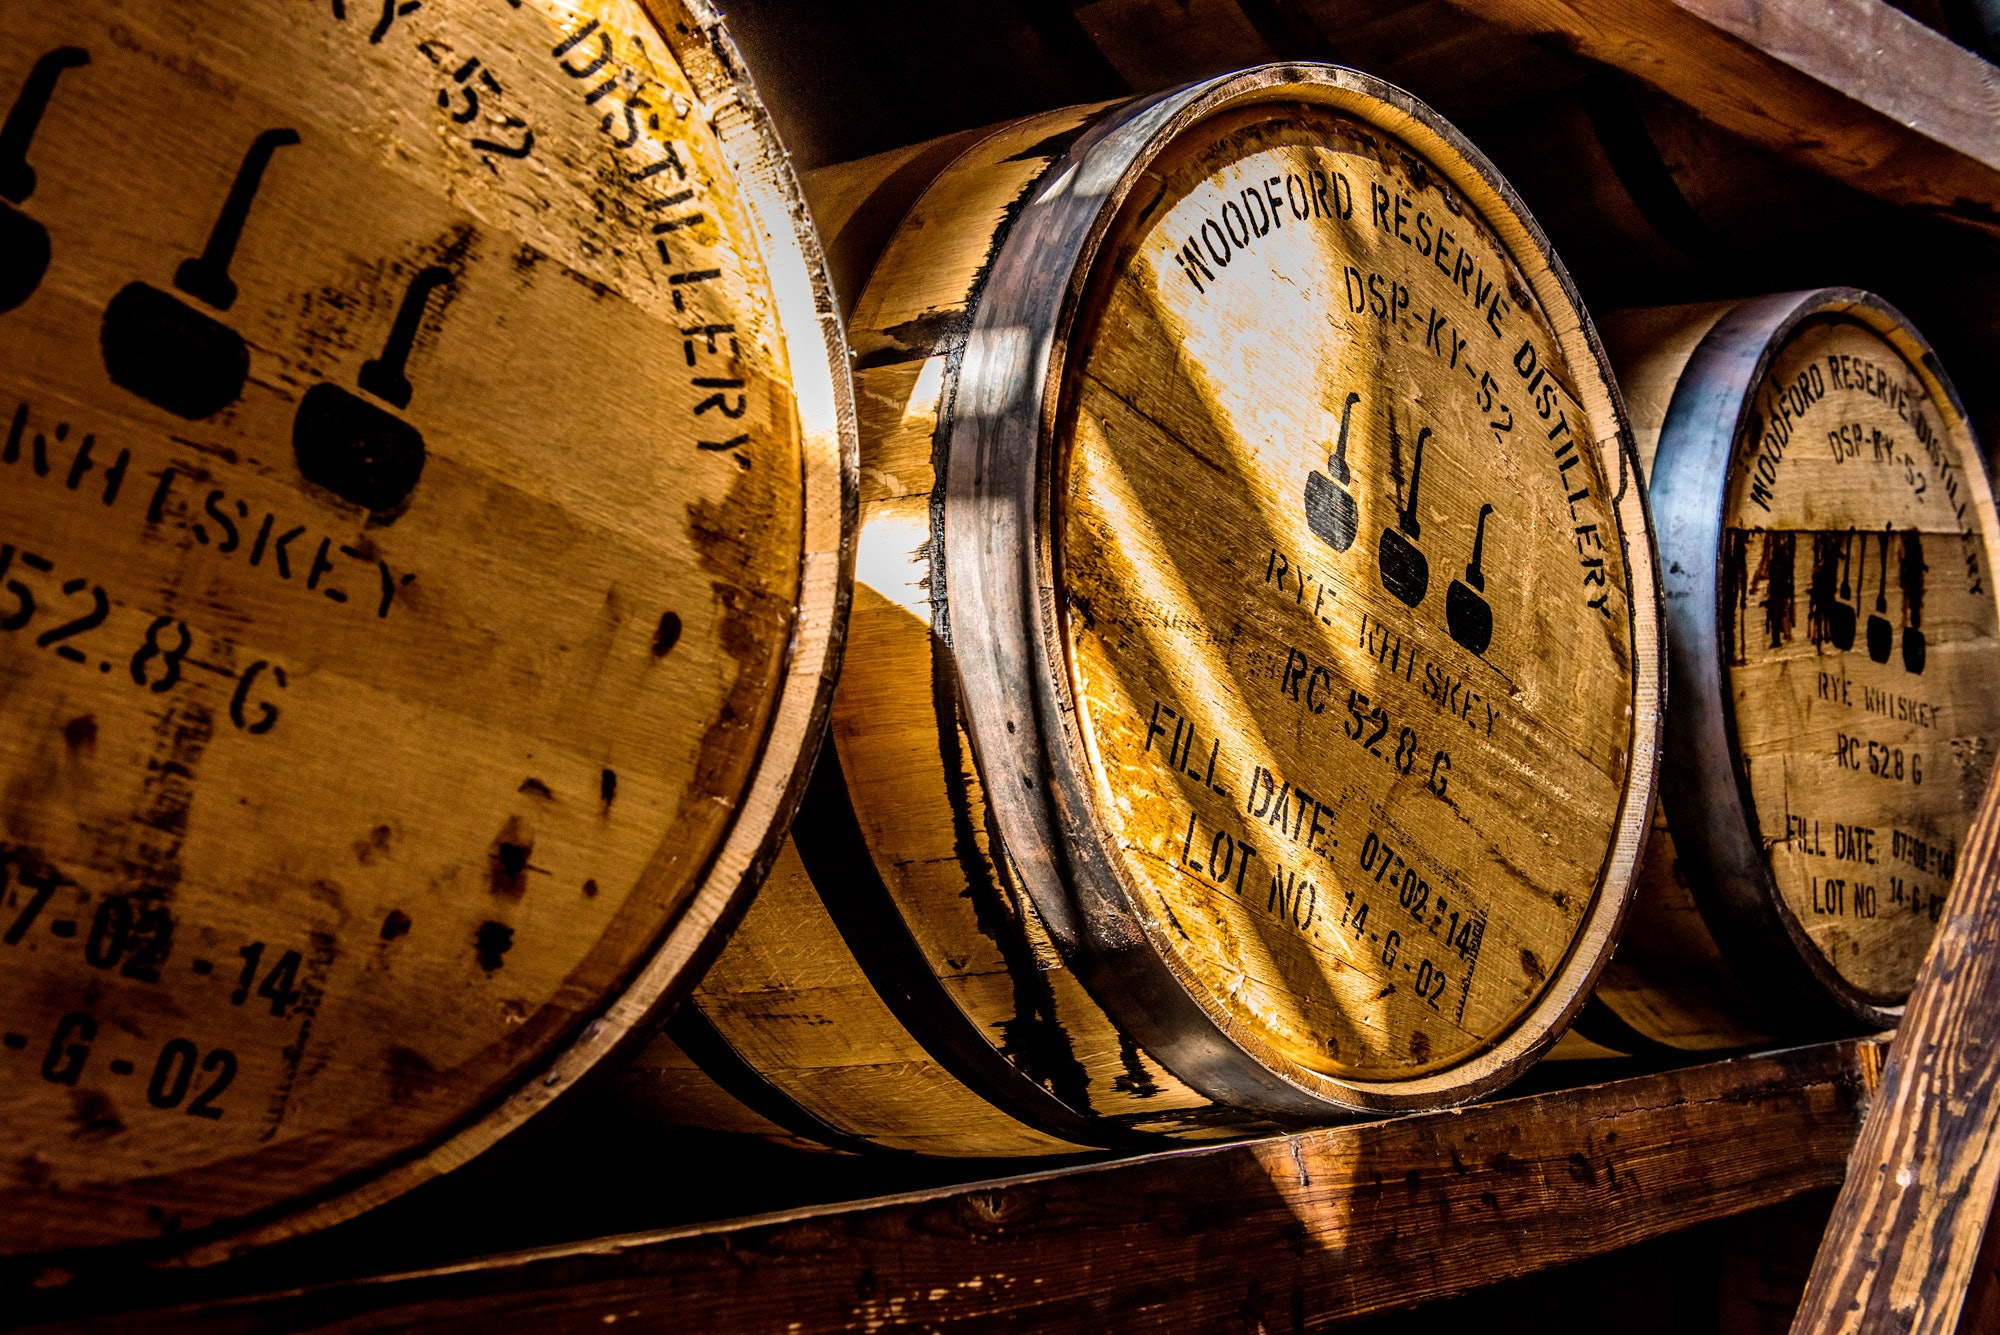 The best places to visit in the us in 2018 lonely planet for Ky bourbon trail craft tour map